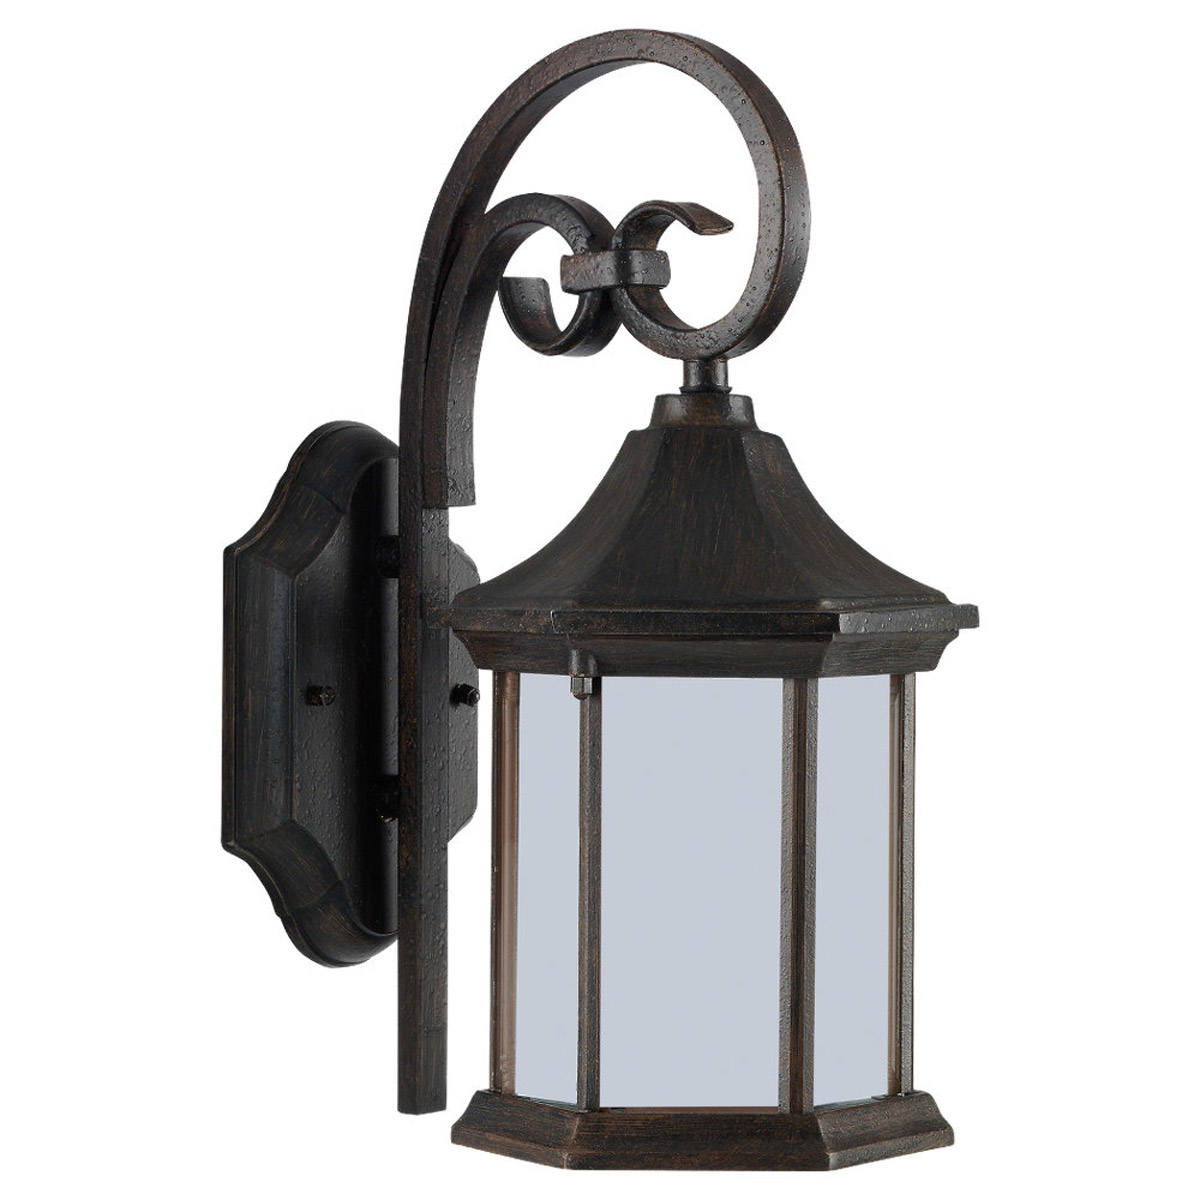 Sea Gull Lighting Ardsley Court 1 Light Outdoor Wall Lantern in Textured Rust Patina 89136PBLE-08